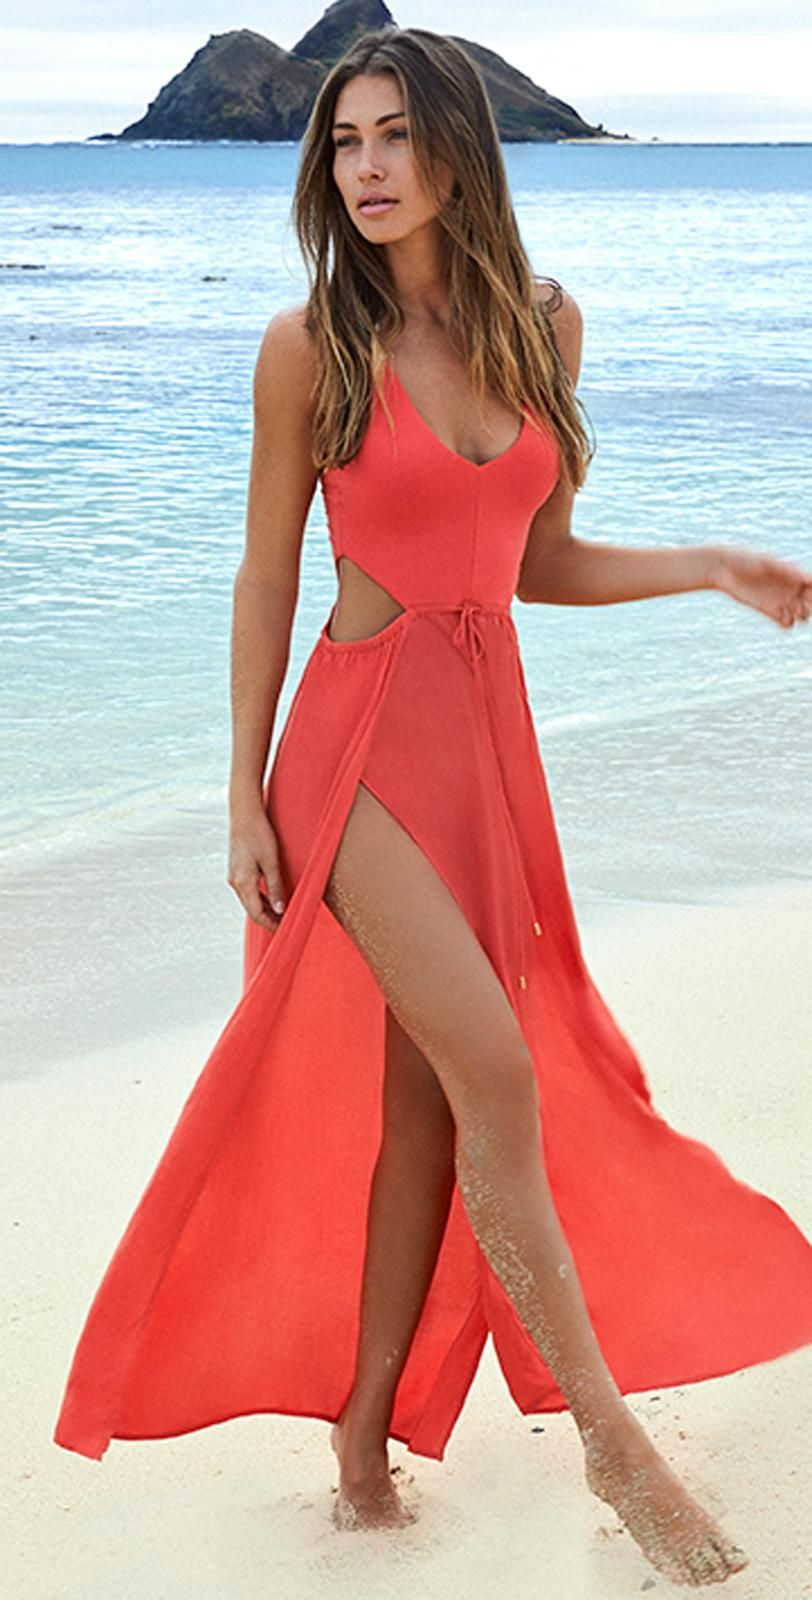 284cafd17c439 Wonderwall Cutout Red Coral Maxi Dress. Available at koogal.com So beautiful  #love